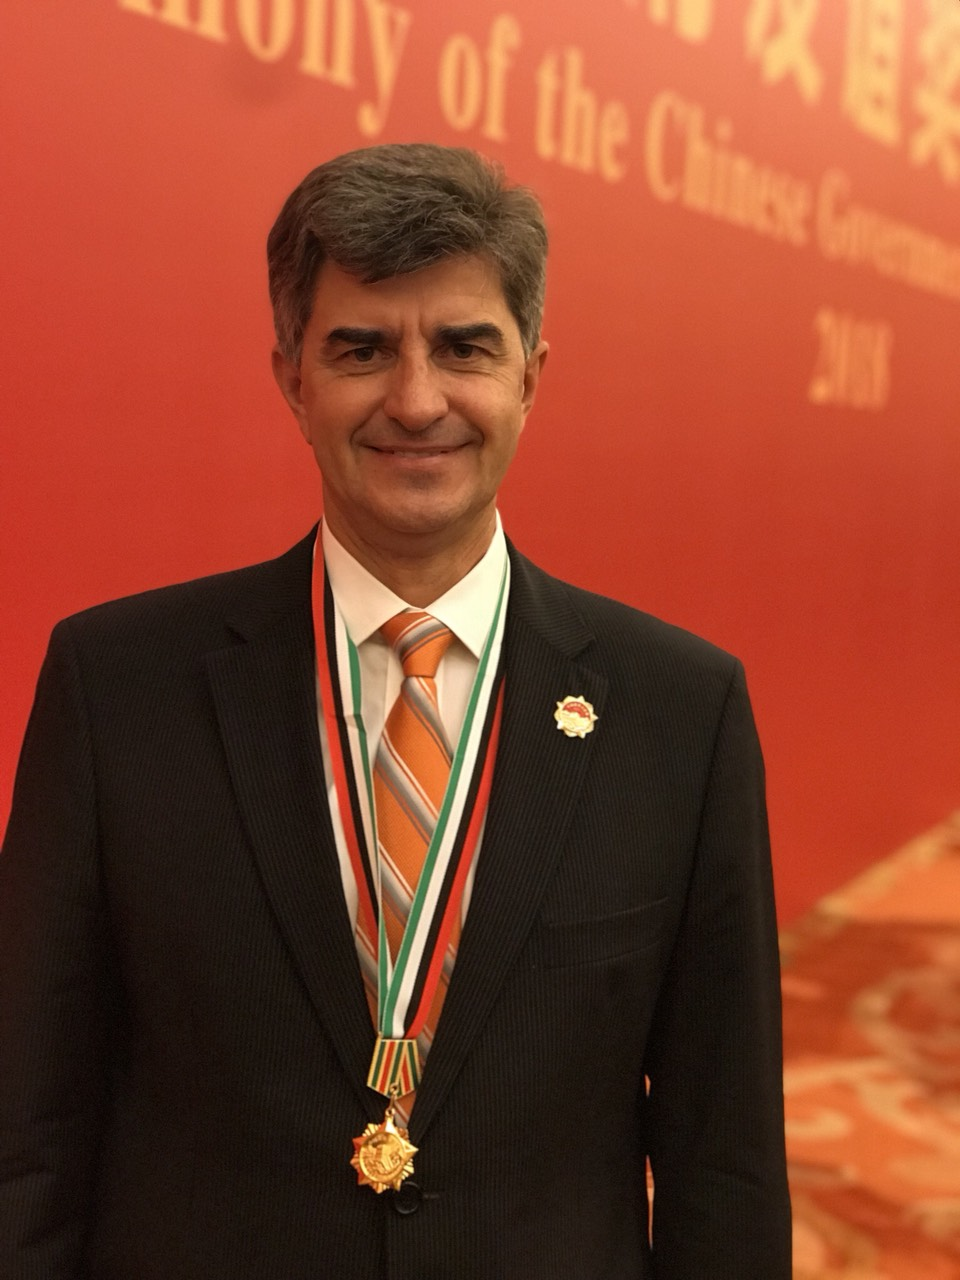 Congratulations to Professor Yury Gogotsi with receiving prestigious Chineese Government Friendship Award, Beijing, in Great Hall of the People, on September 29, 2018.